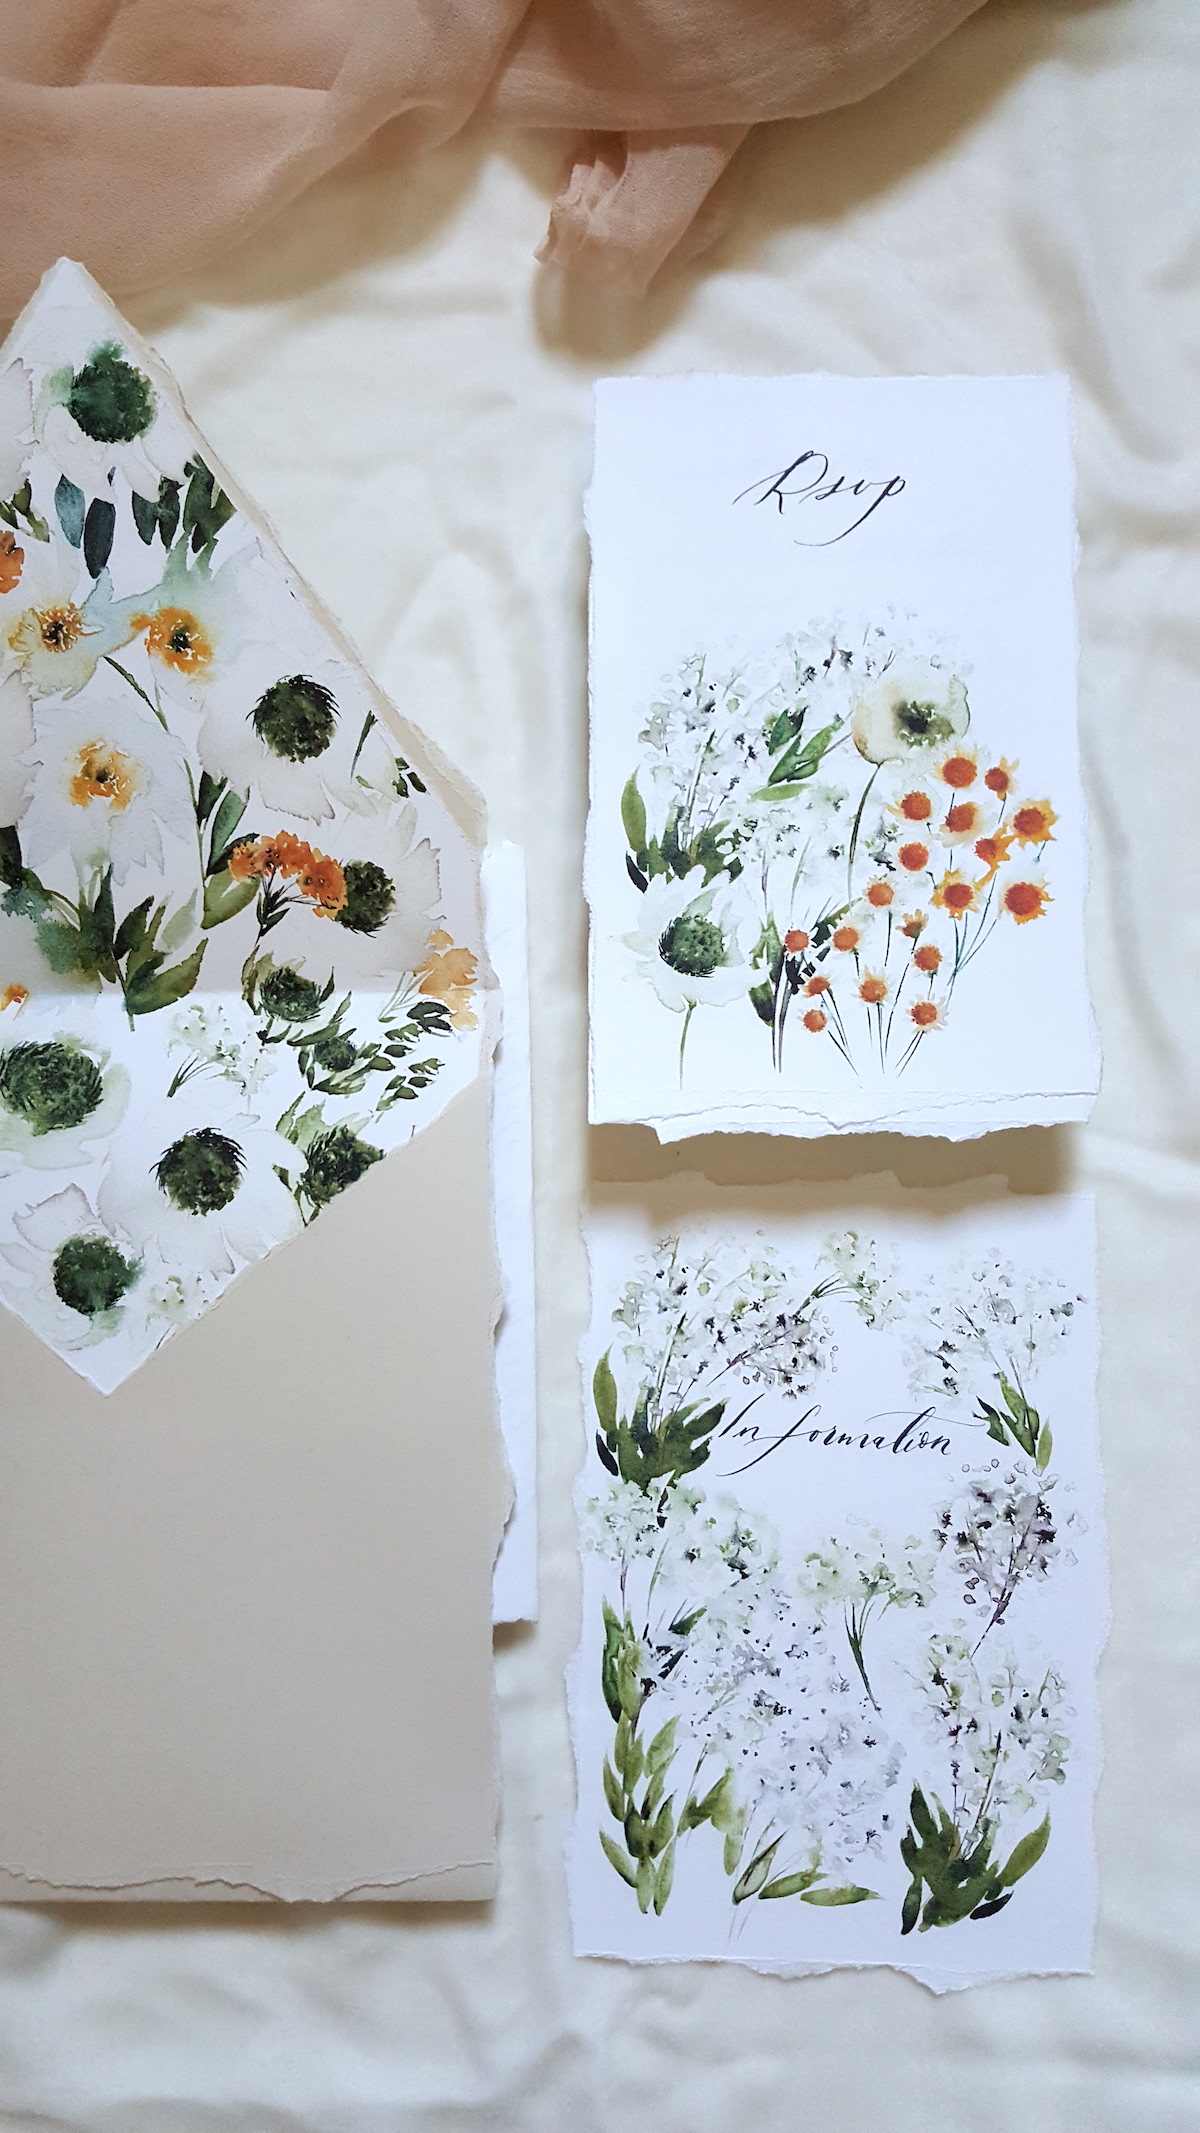 Bespoke Watercolour Wedding invitations with daisies and small white florals